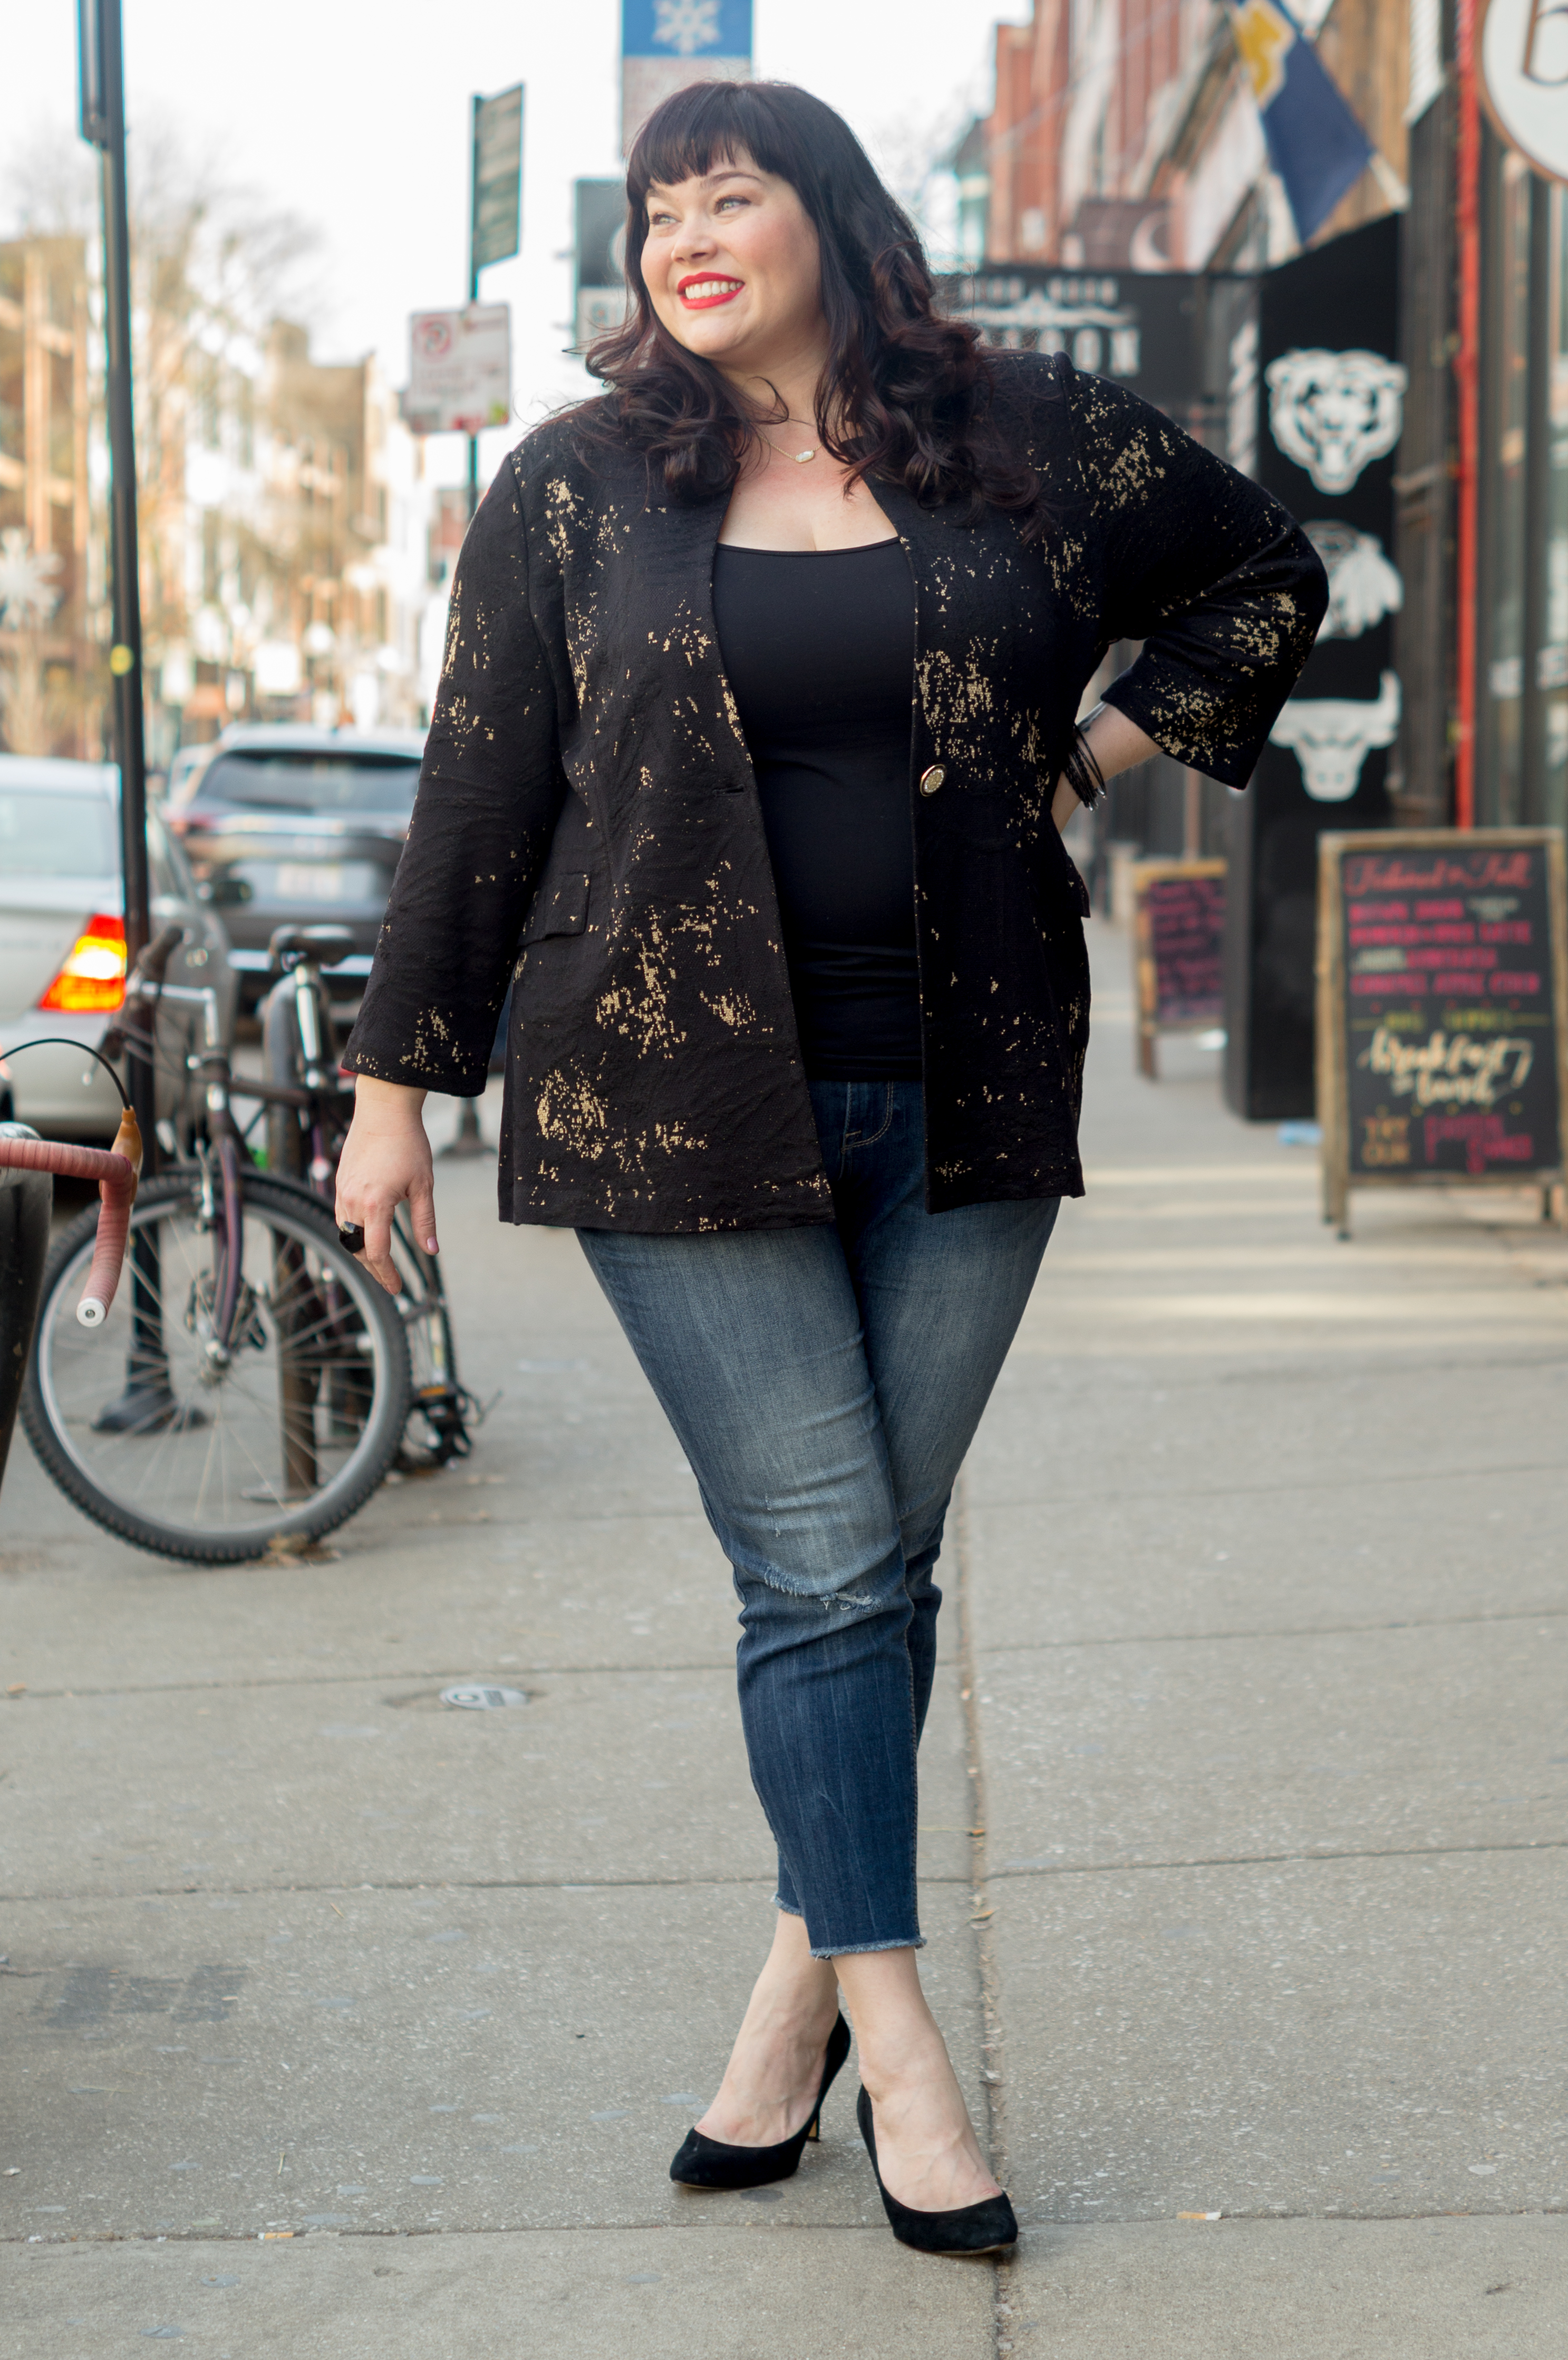 Misook, plus size blazer, Plus Size Style, Plus Size Fashion, Style Plus Curves, Chicago Blogger, Chicago Plus Size Blogger, Plus Size Blogger, Amber McCulloch